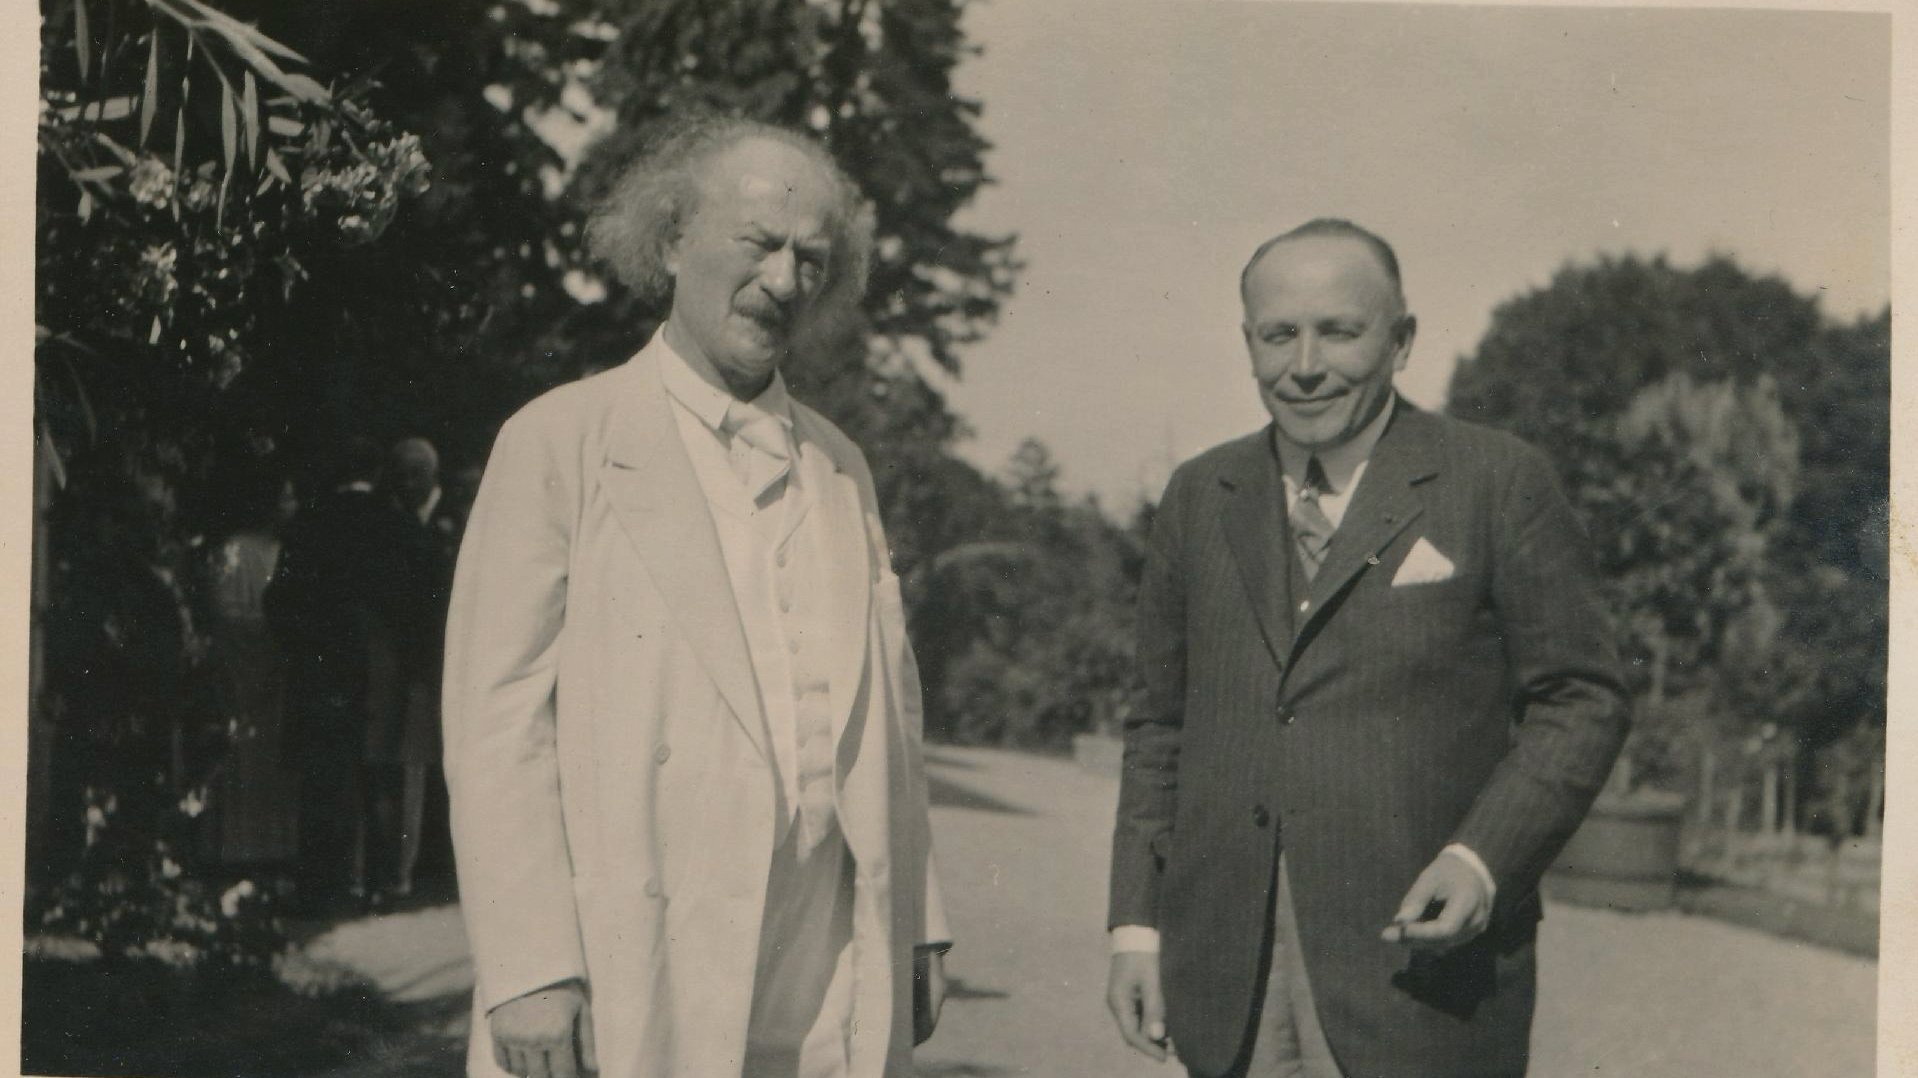 Black and white picture of two elegantly dressed men (one of them Ignacy Jan Paderewski) standing on the road, trees in the background. - grafika artykułu